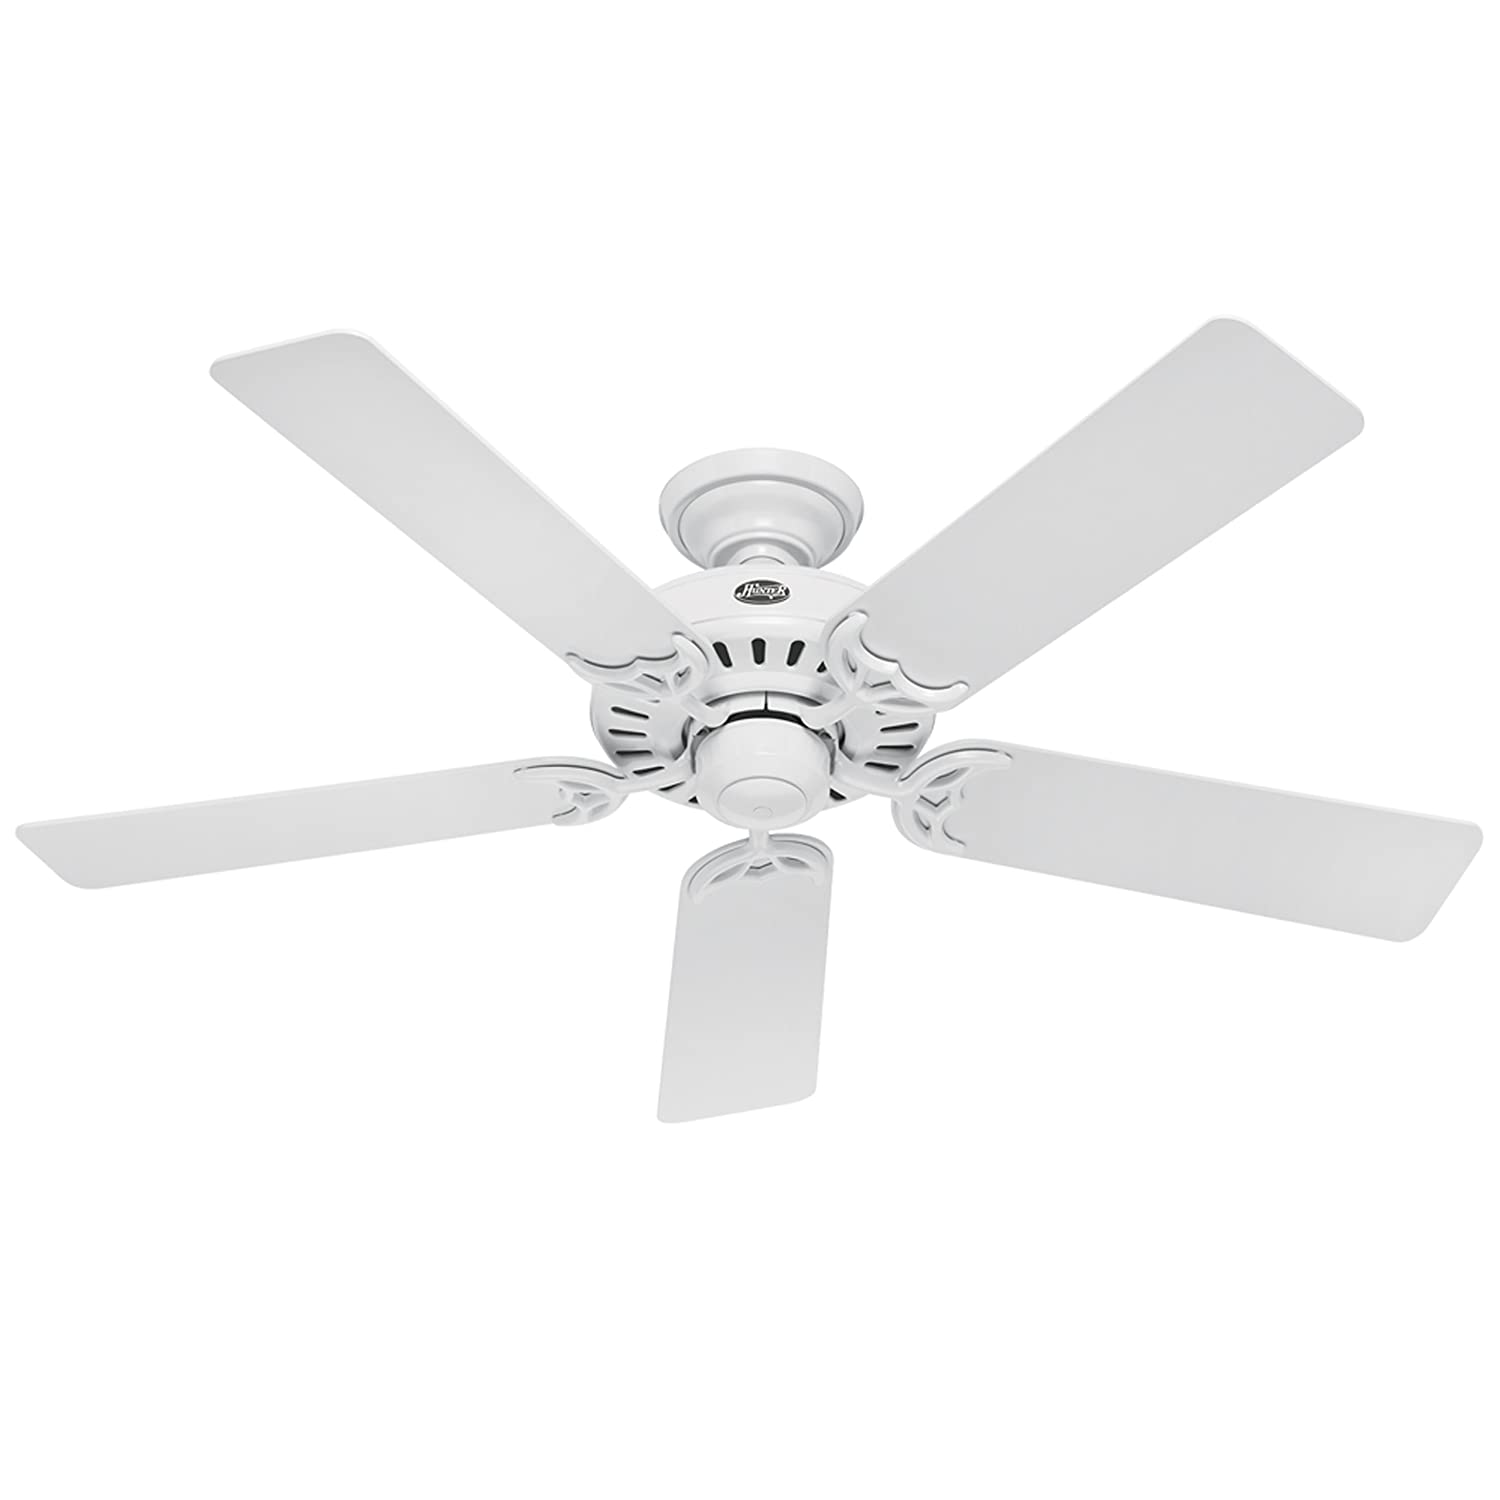 Hunter 25517 Summer Breeze 52 Inch 5 Blade Ceiling Fan, White With  White/Bleached Oak Blades   Quiet Ceiling Fan For Bedroom   Amazon.com